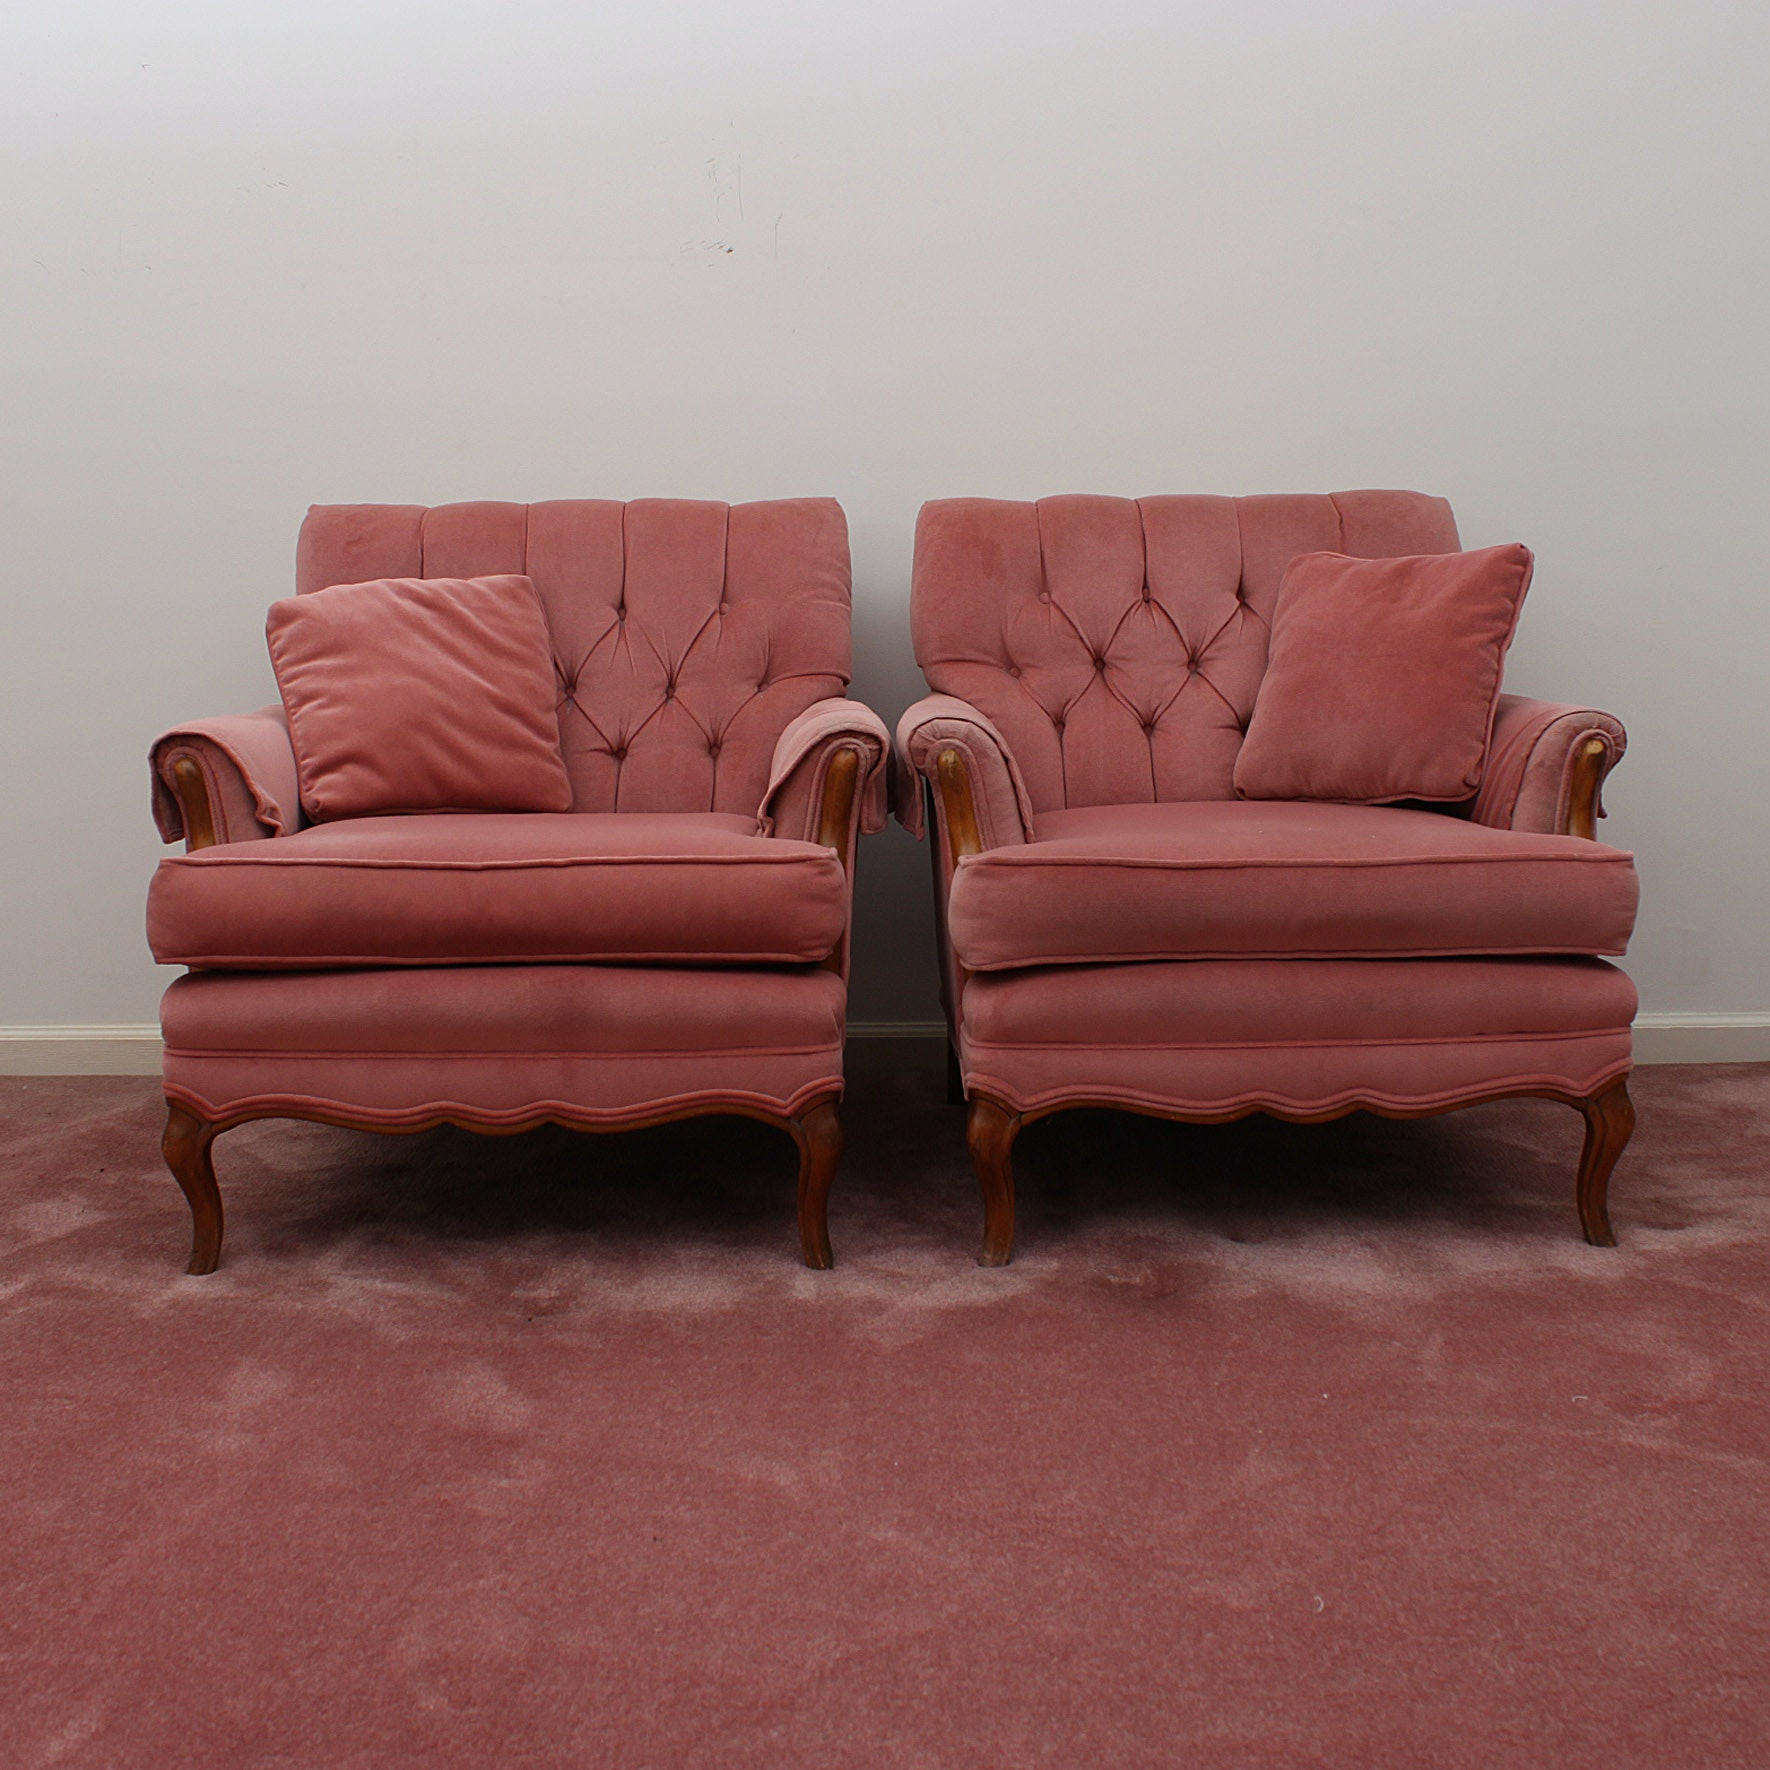 Pair of Pink Button Tufted Arm Chairs by Madden